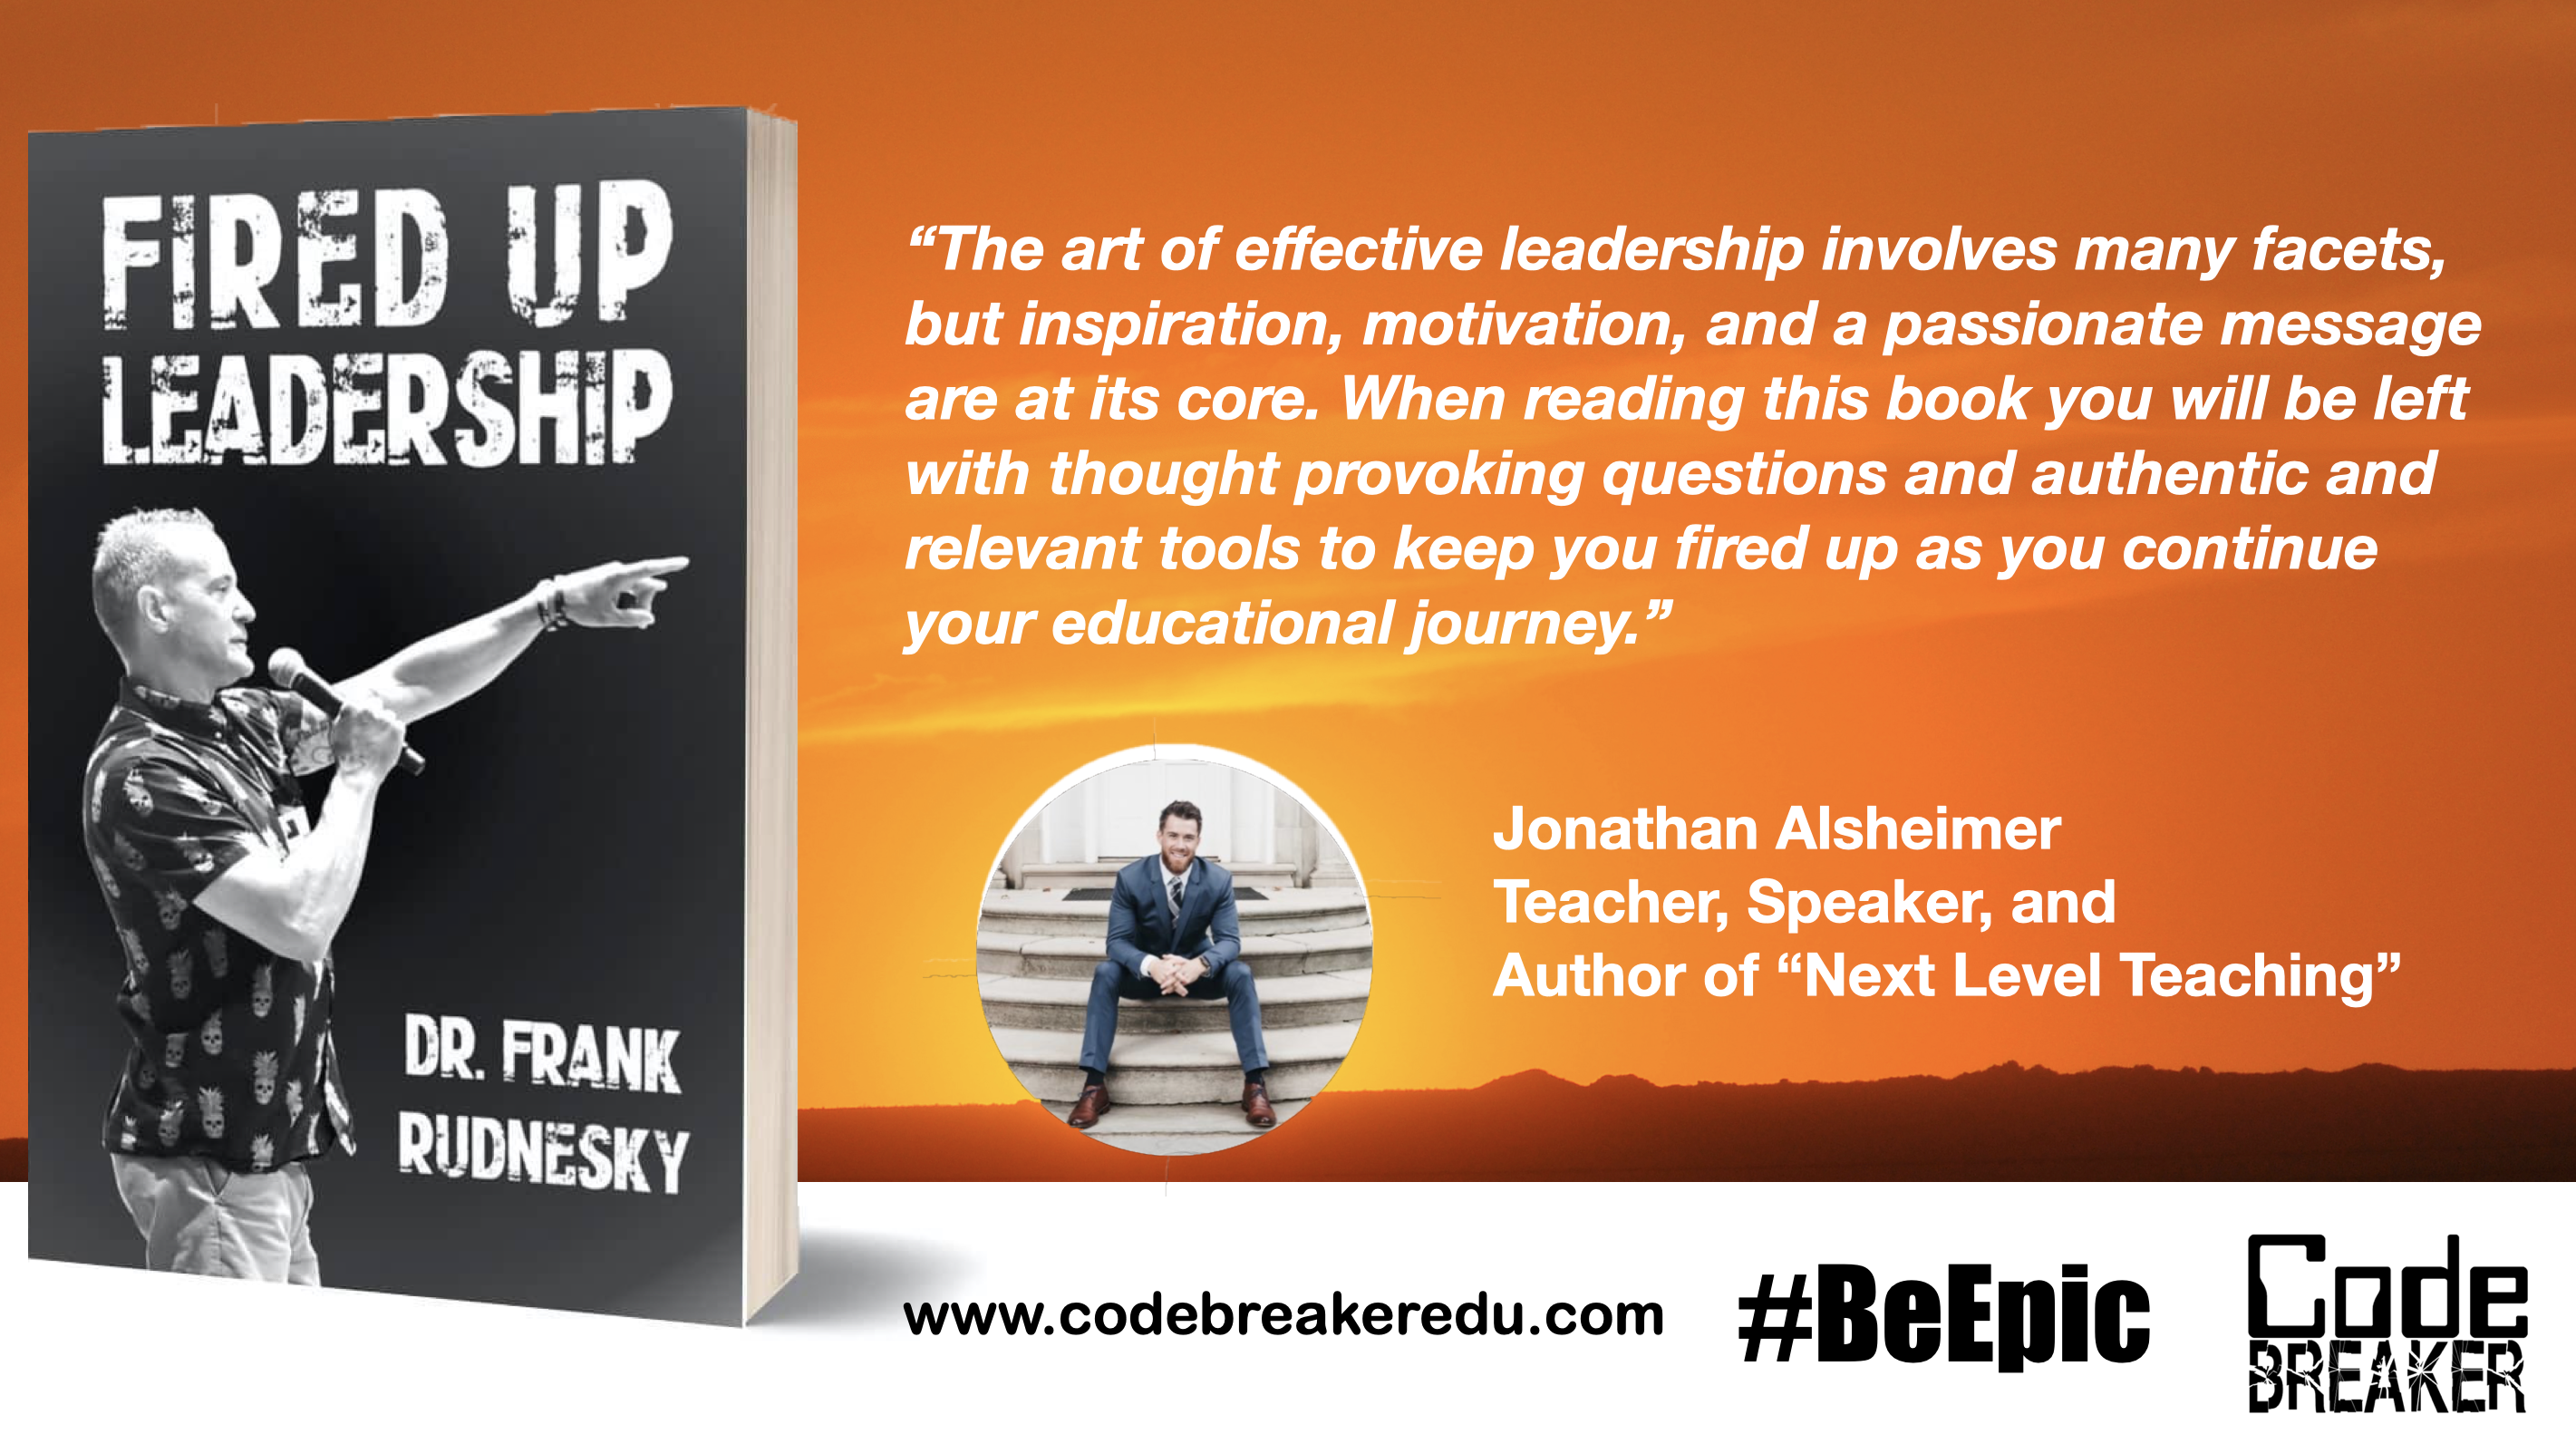 Get Fired Up With FIRED UP LEADERSHIP!